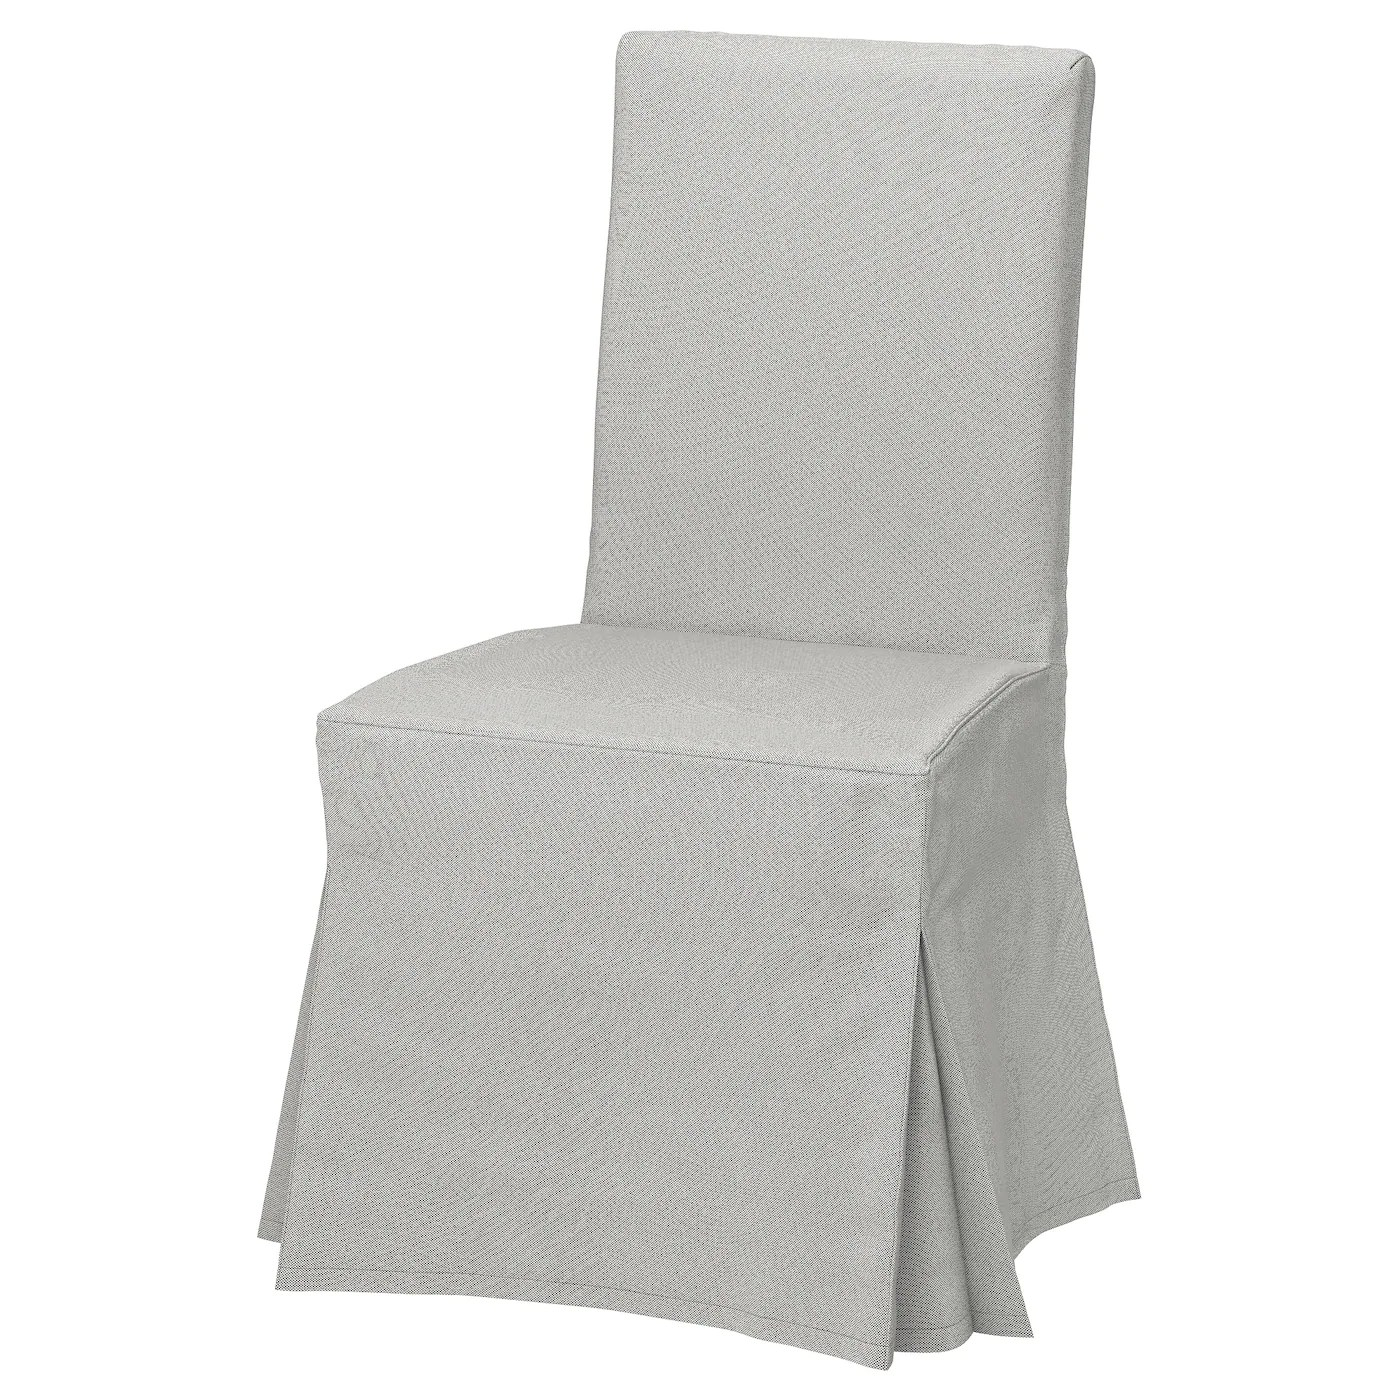 christmas chair covers ireland wooden chairs wedding dining ikea henriksdal cover long